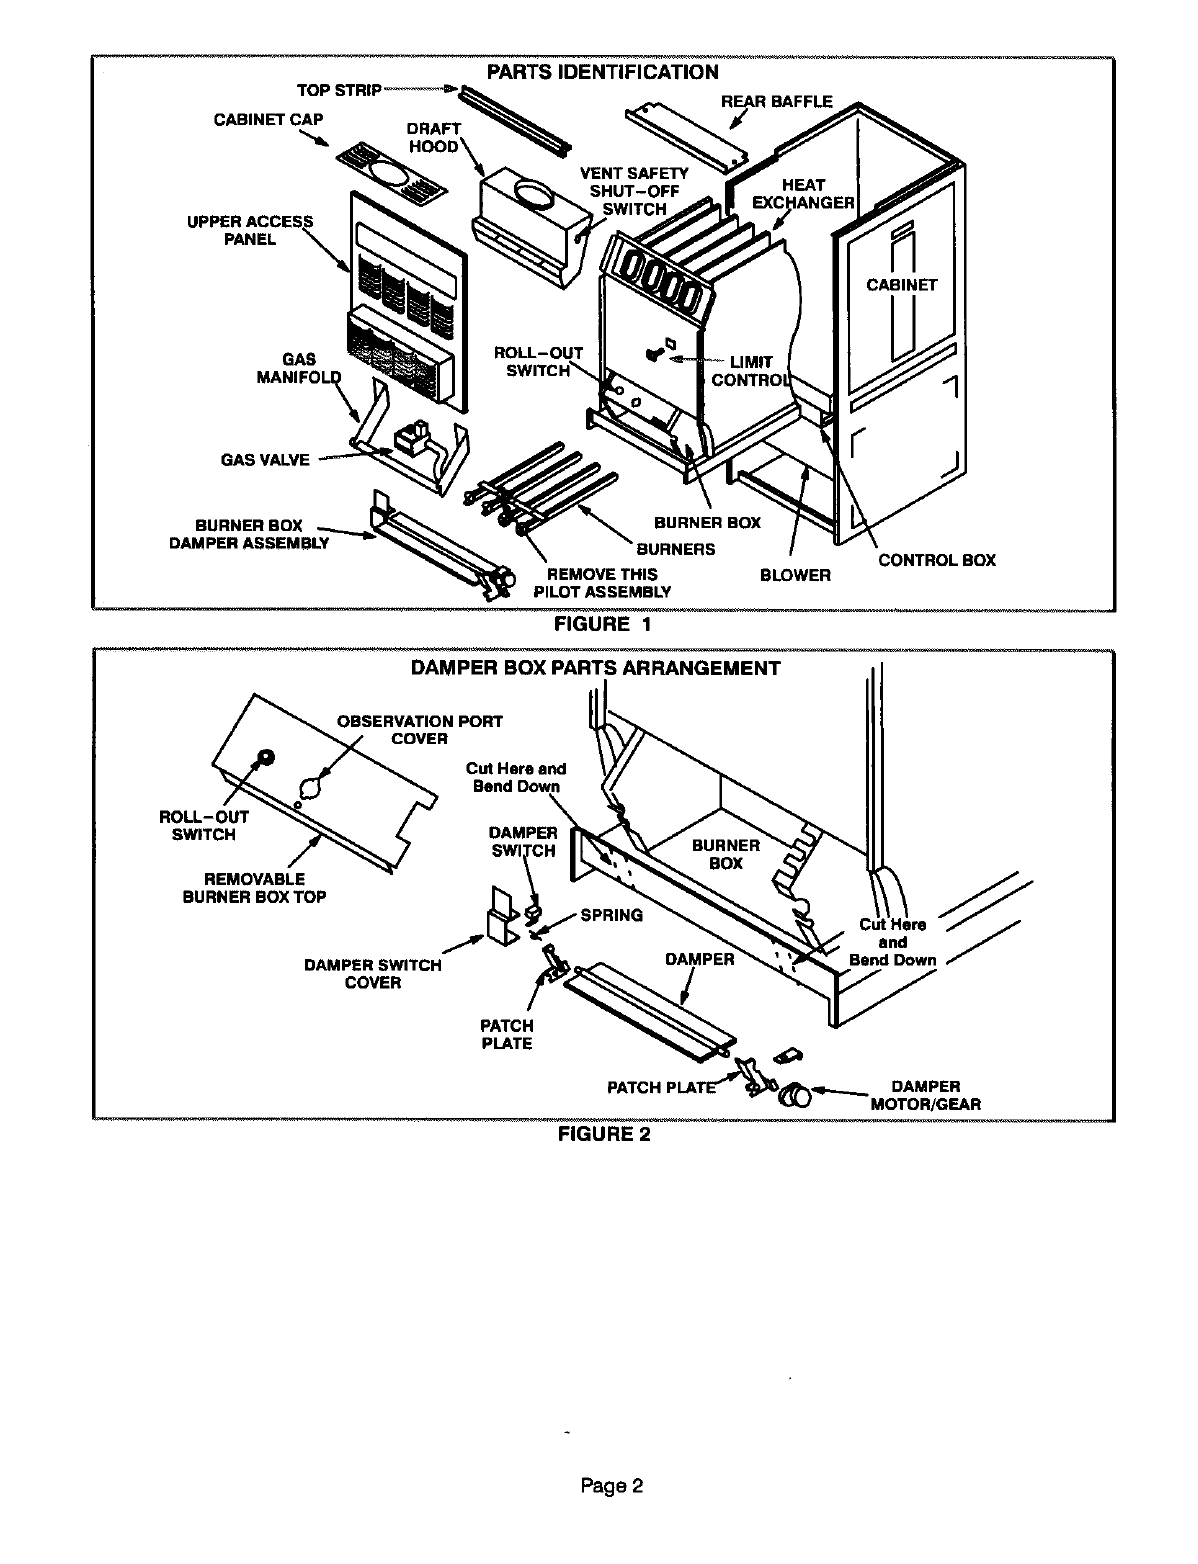 LENNOX Furnace/Heater, Gas Manual L0806910UserManual.wiki